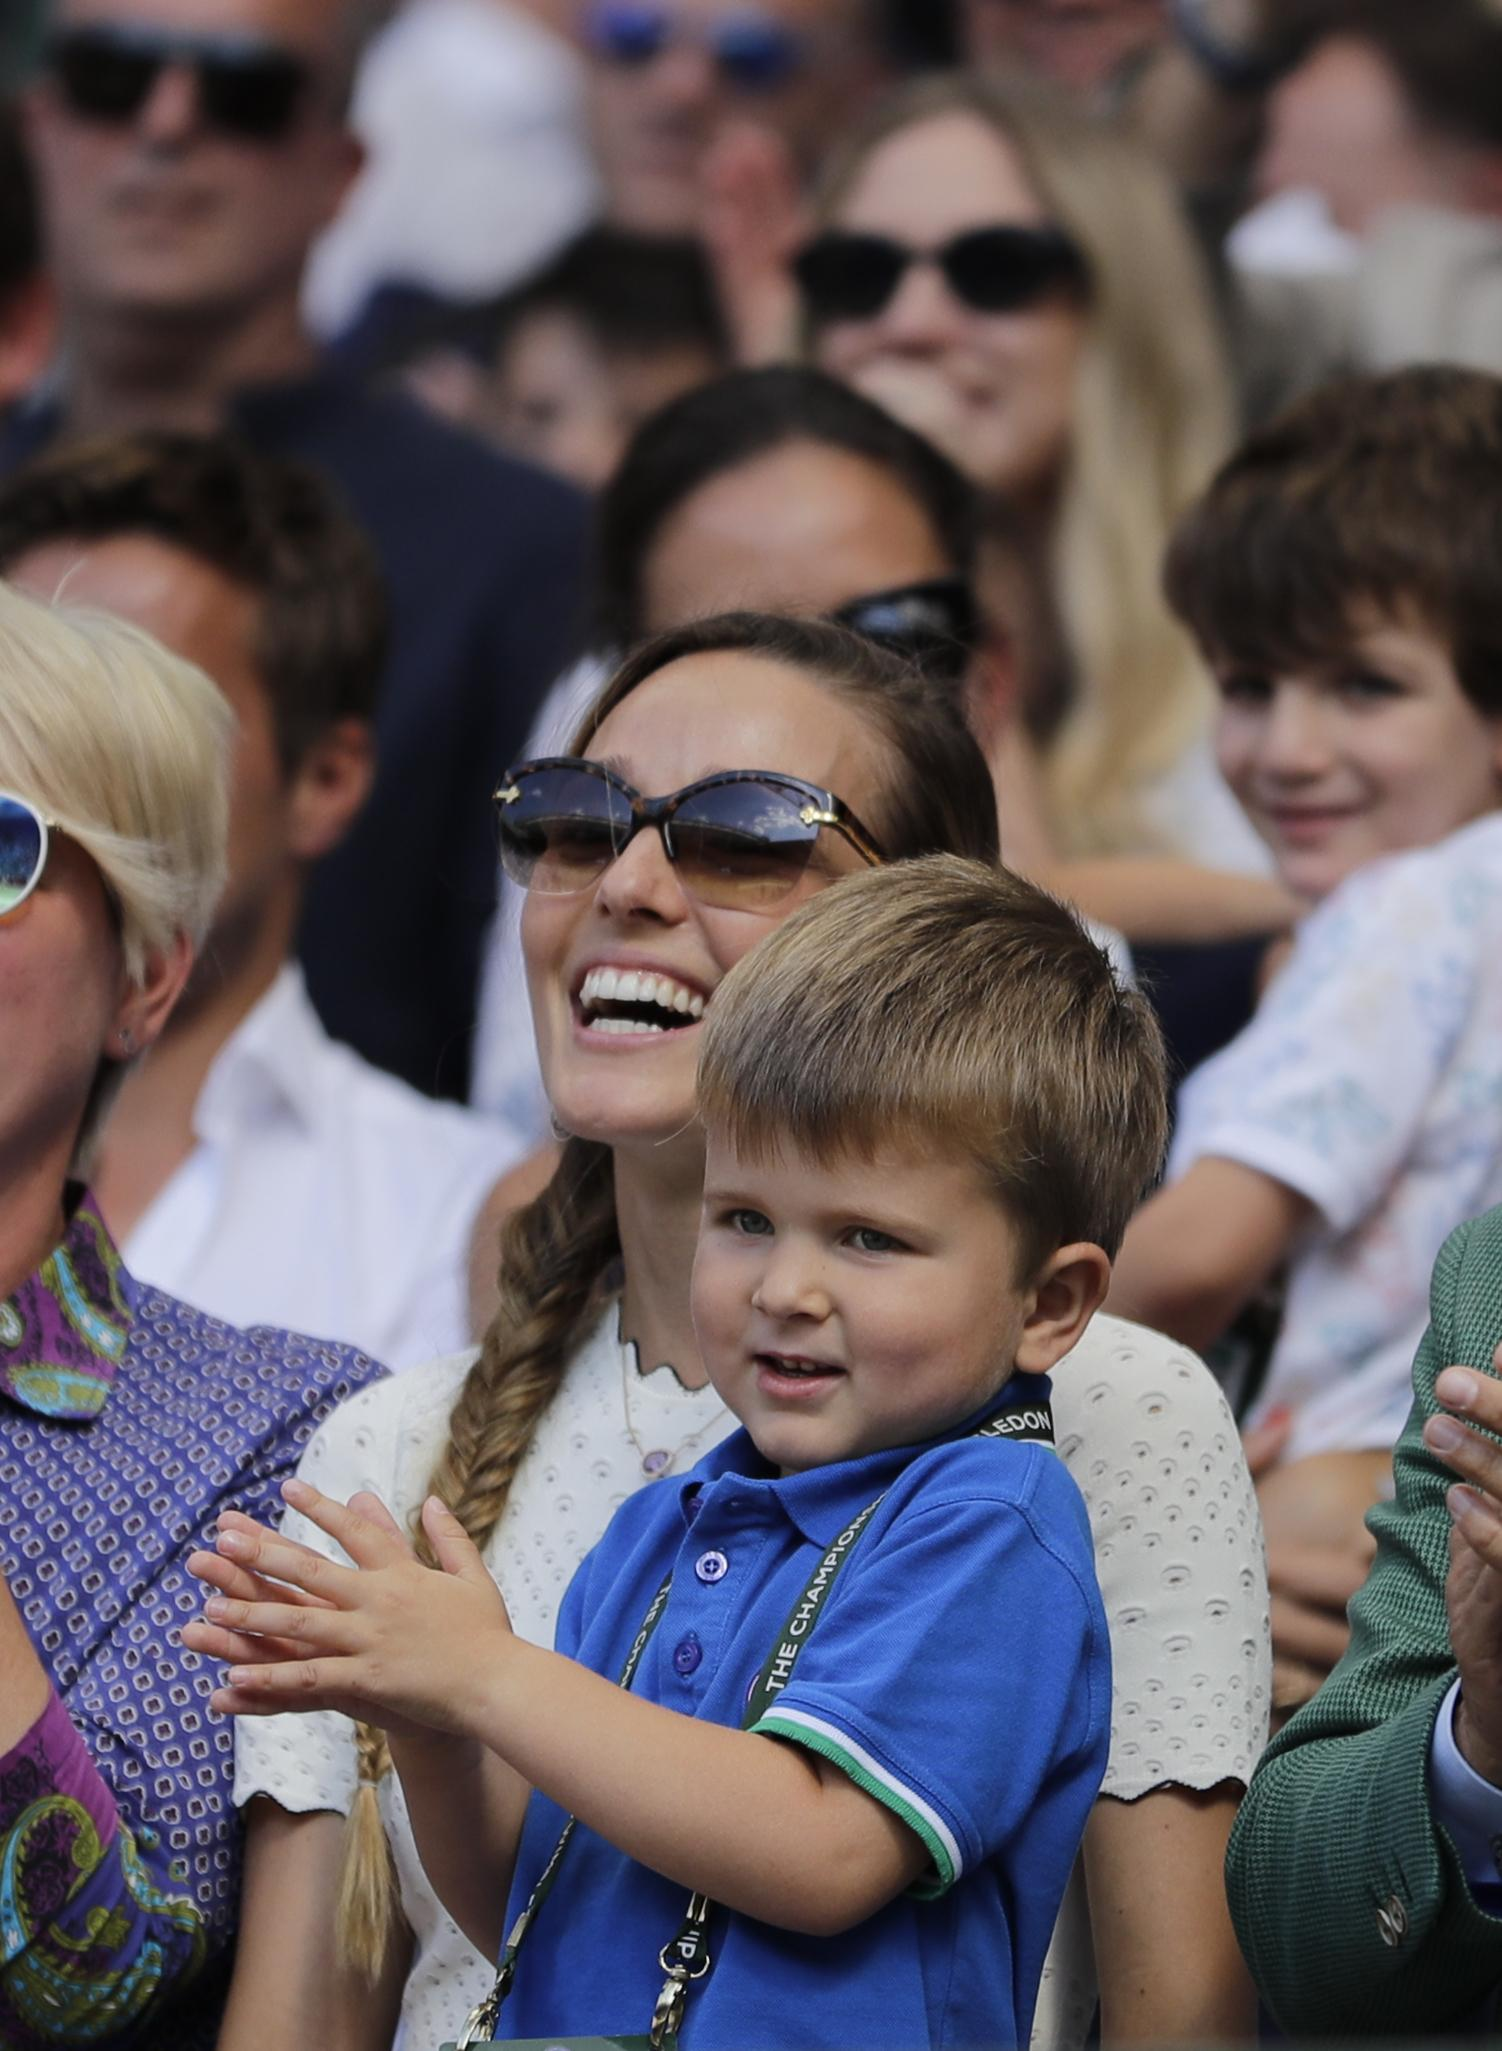 Novak Djokovic was cheered on by his son at Wimbledon